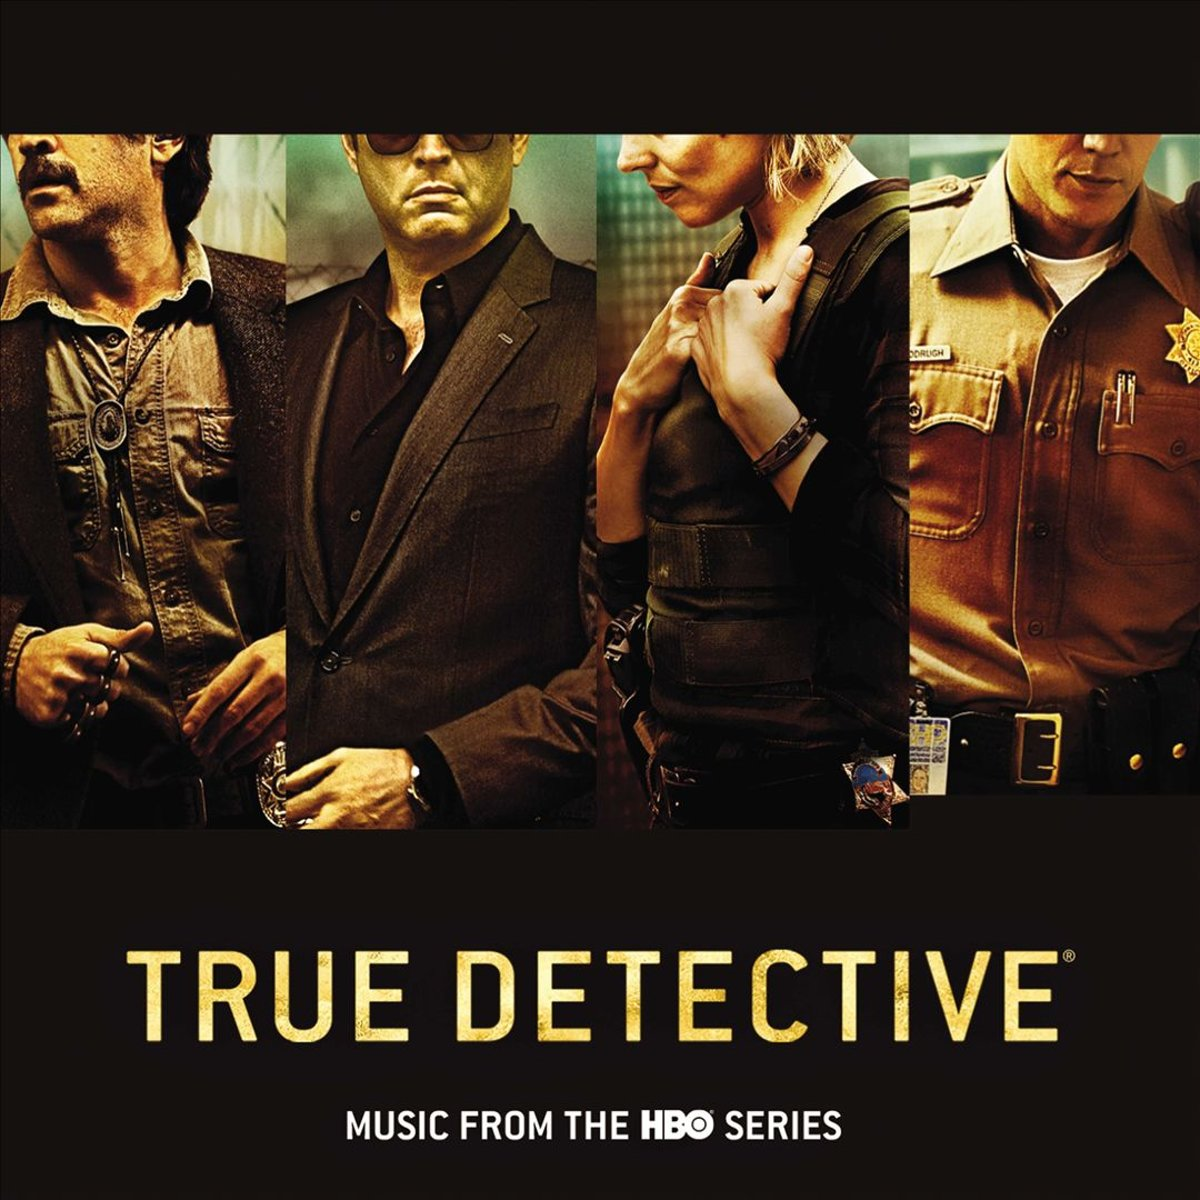 True Detective: Music from the HBO Series kopen